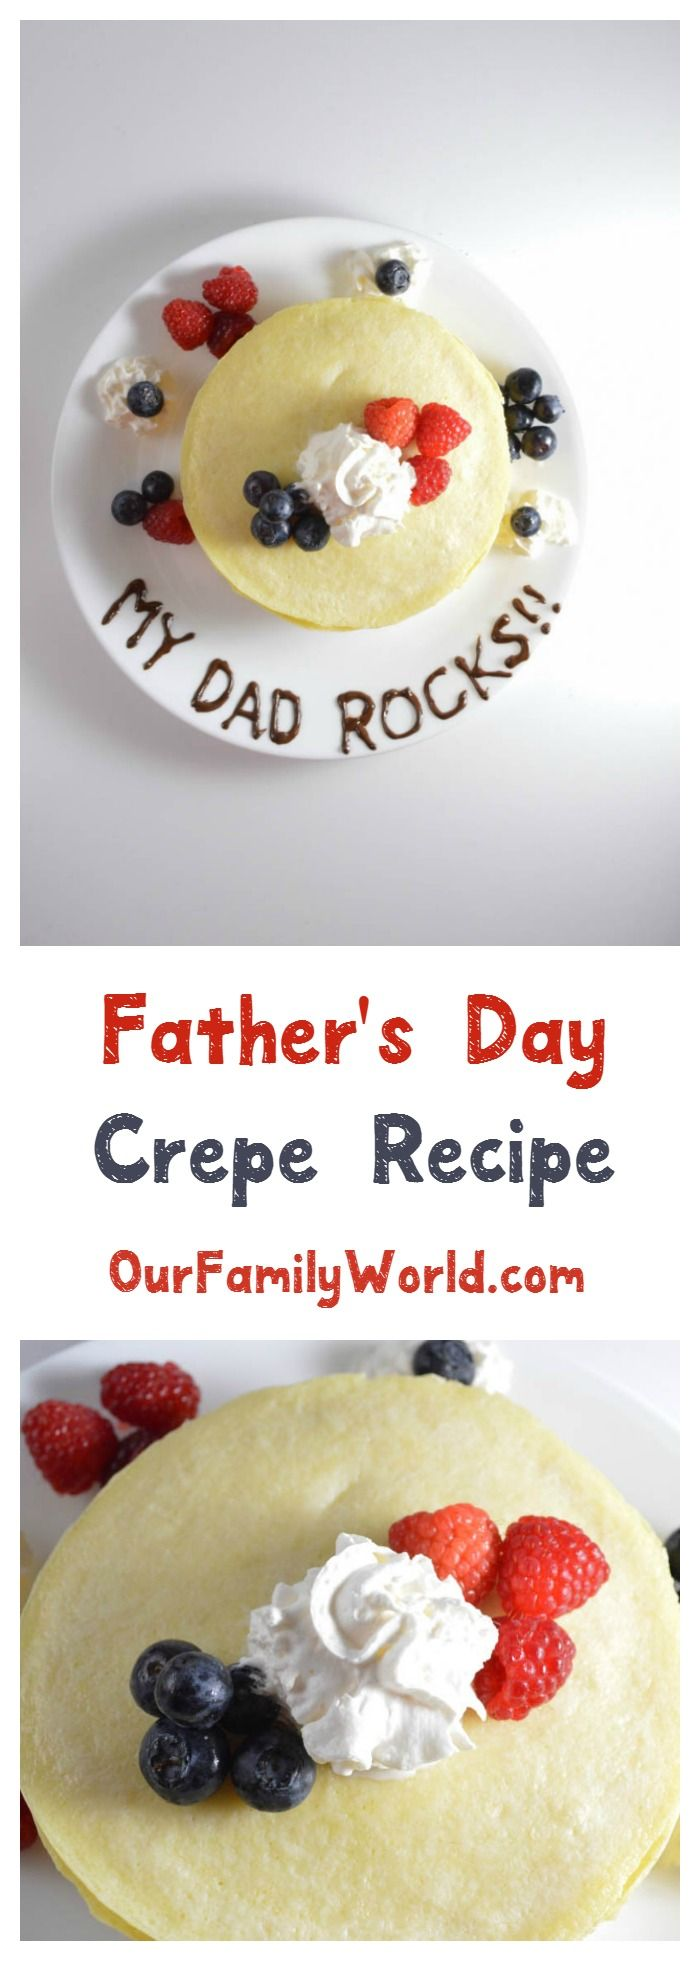 8 best images about Father's Day on Pinterest | Dads ...